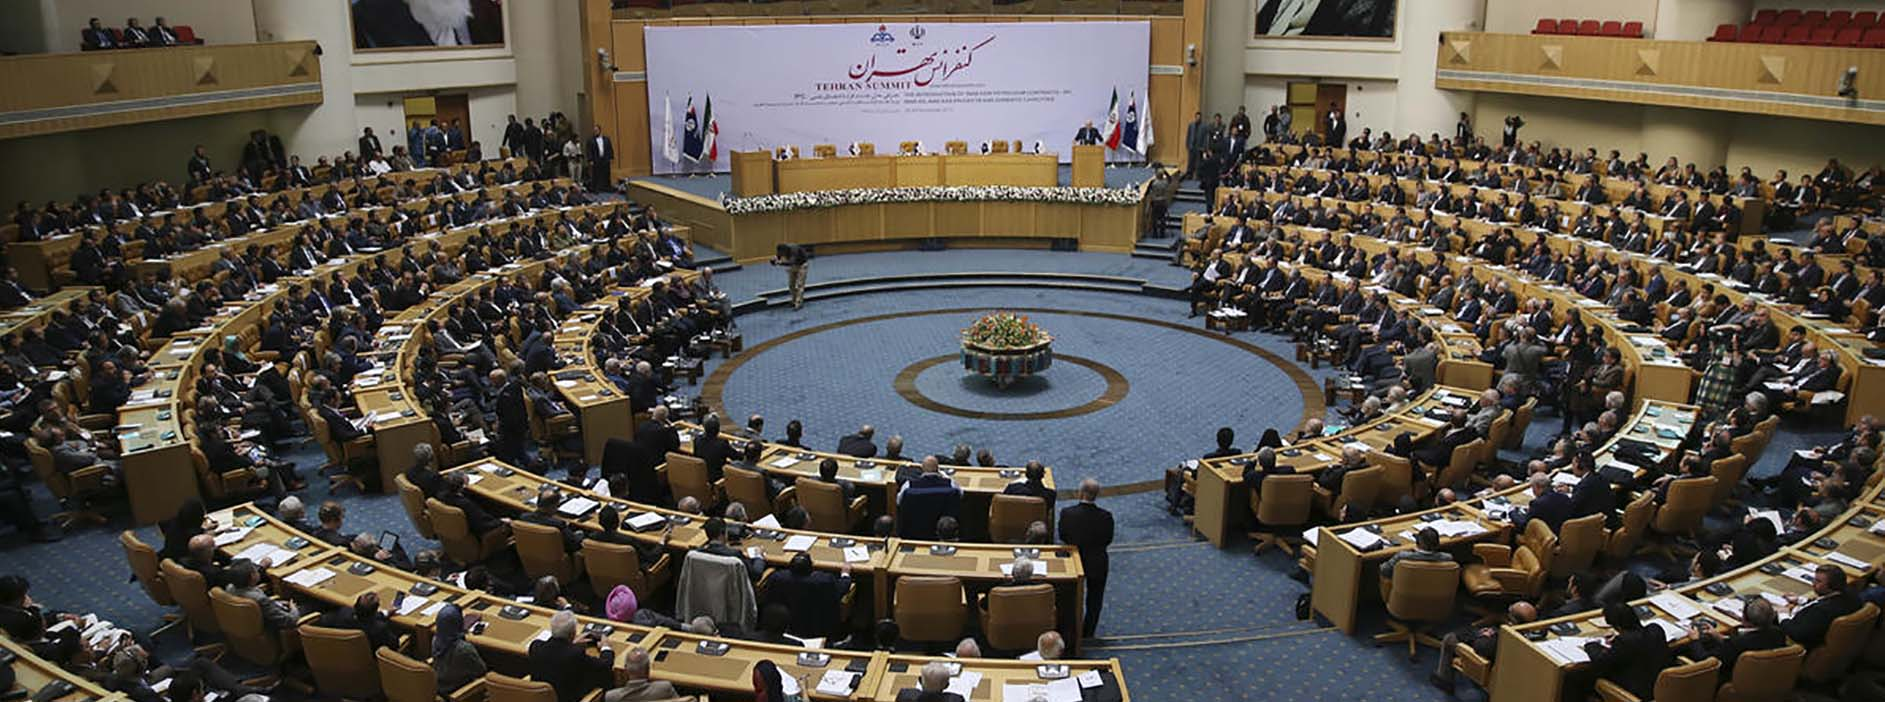 Participants listen to a speaker during Iran Petroleum Contracts Conference in Tehran, Iran, Saturday, Nov. 28, 2015. Iran has unveiled a new model of oil contracts aimed at attracting foreign investment once sanctions are lifted under a landmark nuclear deal reached earlier this year. Portraits of the late Iranian revolutionary founder Ayatollah Khomeini, left, and Supreme leader Ayatollah Ali Khamenei hang on the wall. (AP Photo/Vahid Salemi)